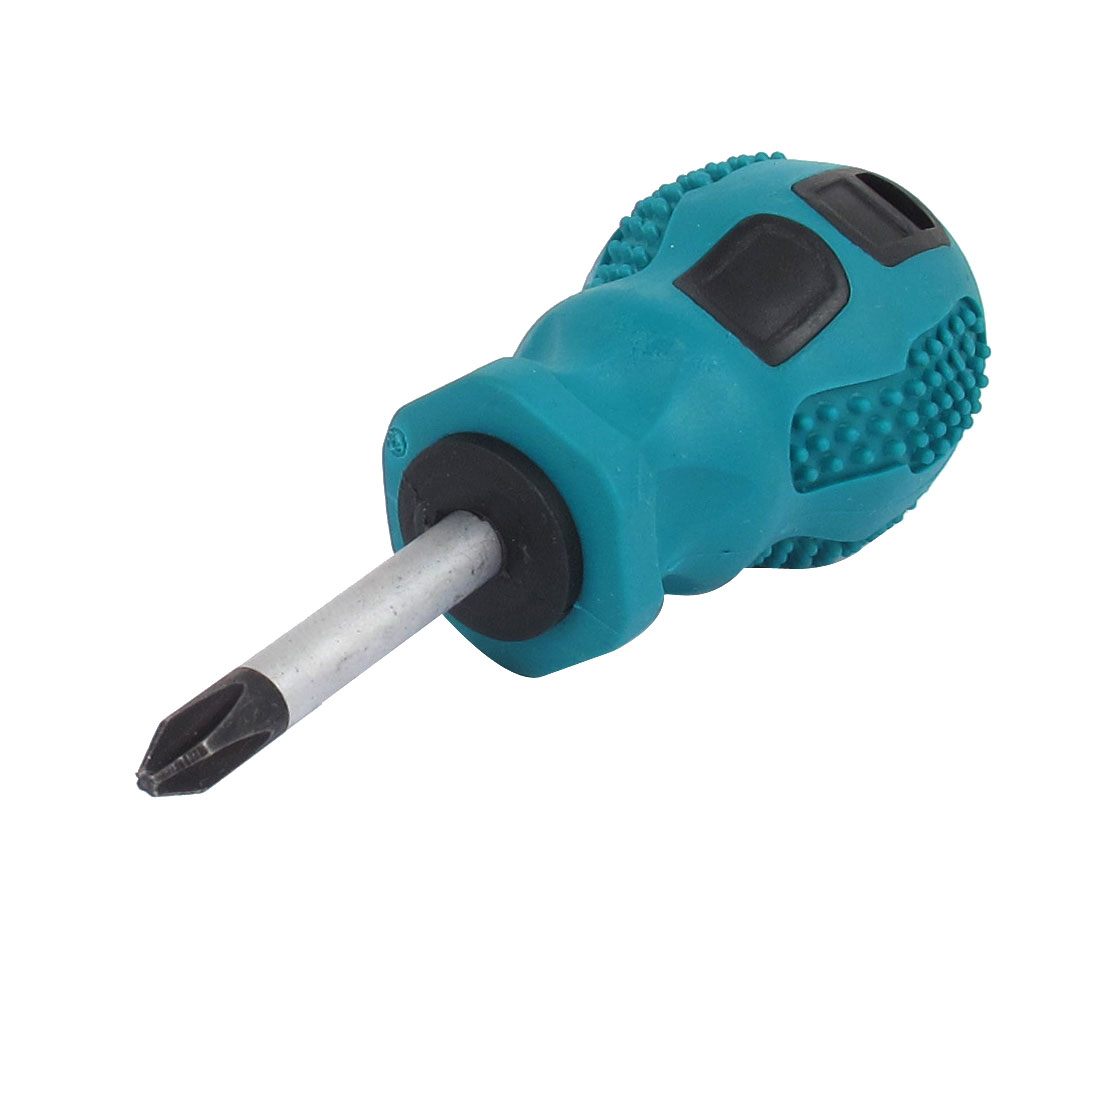 6mmx38mm Shaft 6mm Magnetic Tip Plastic Grip Crosshead Phillips Screwdriver